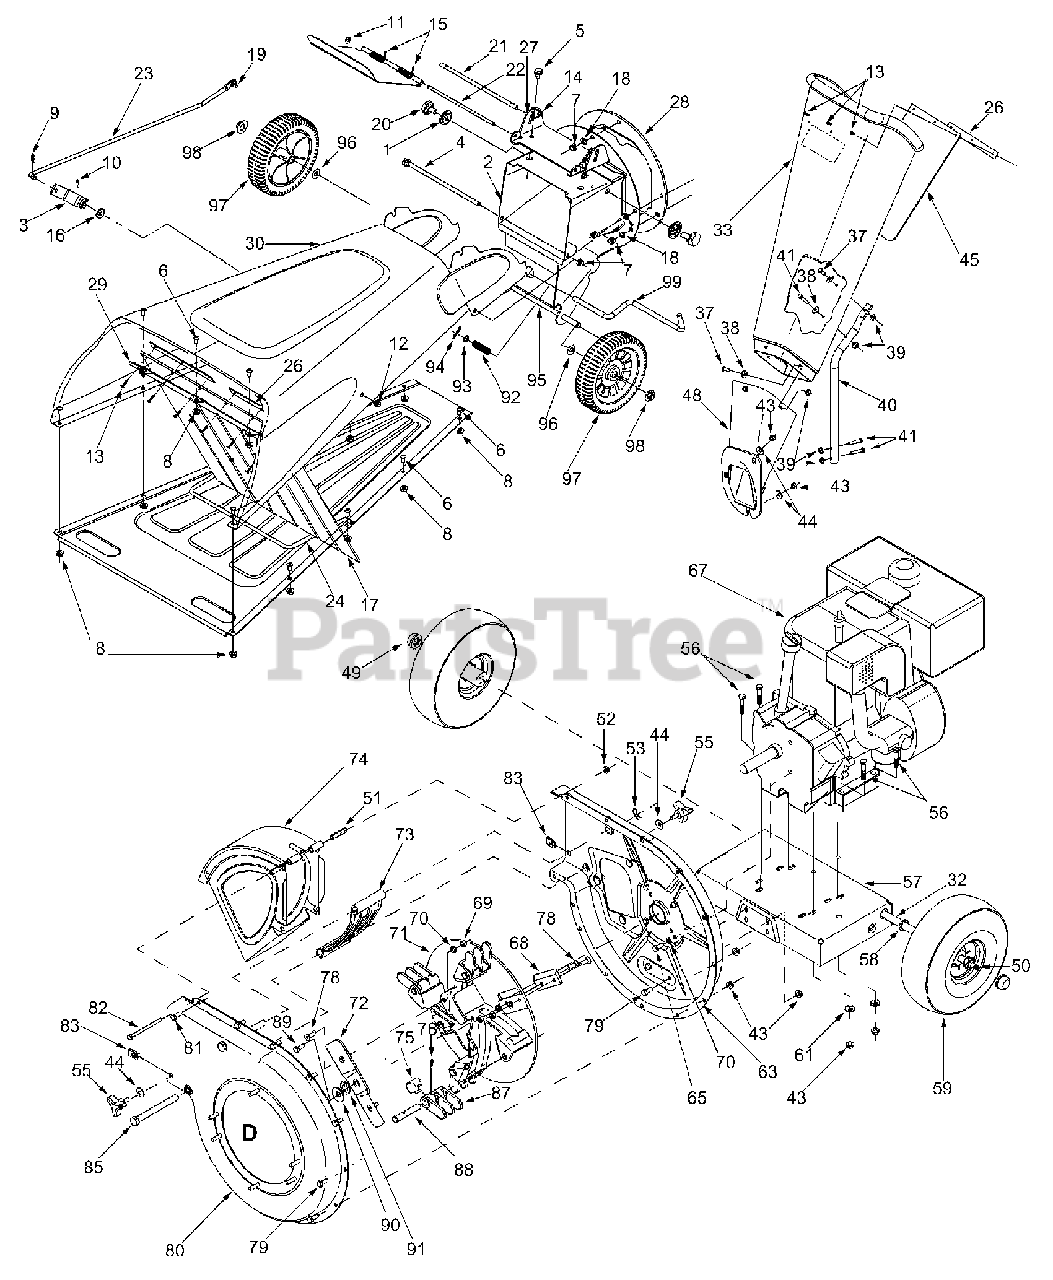 Craftsman Parts on the General Assembly Diagram for 247